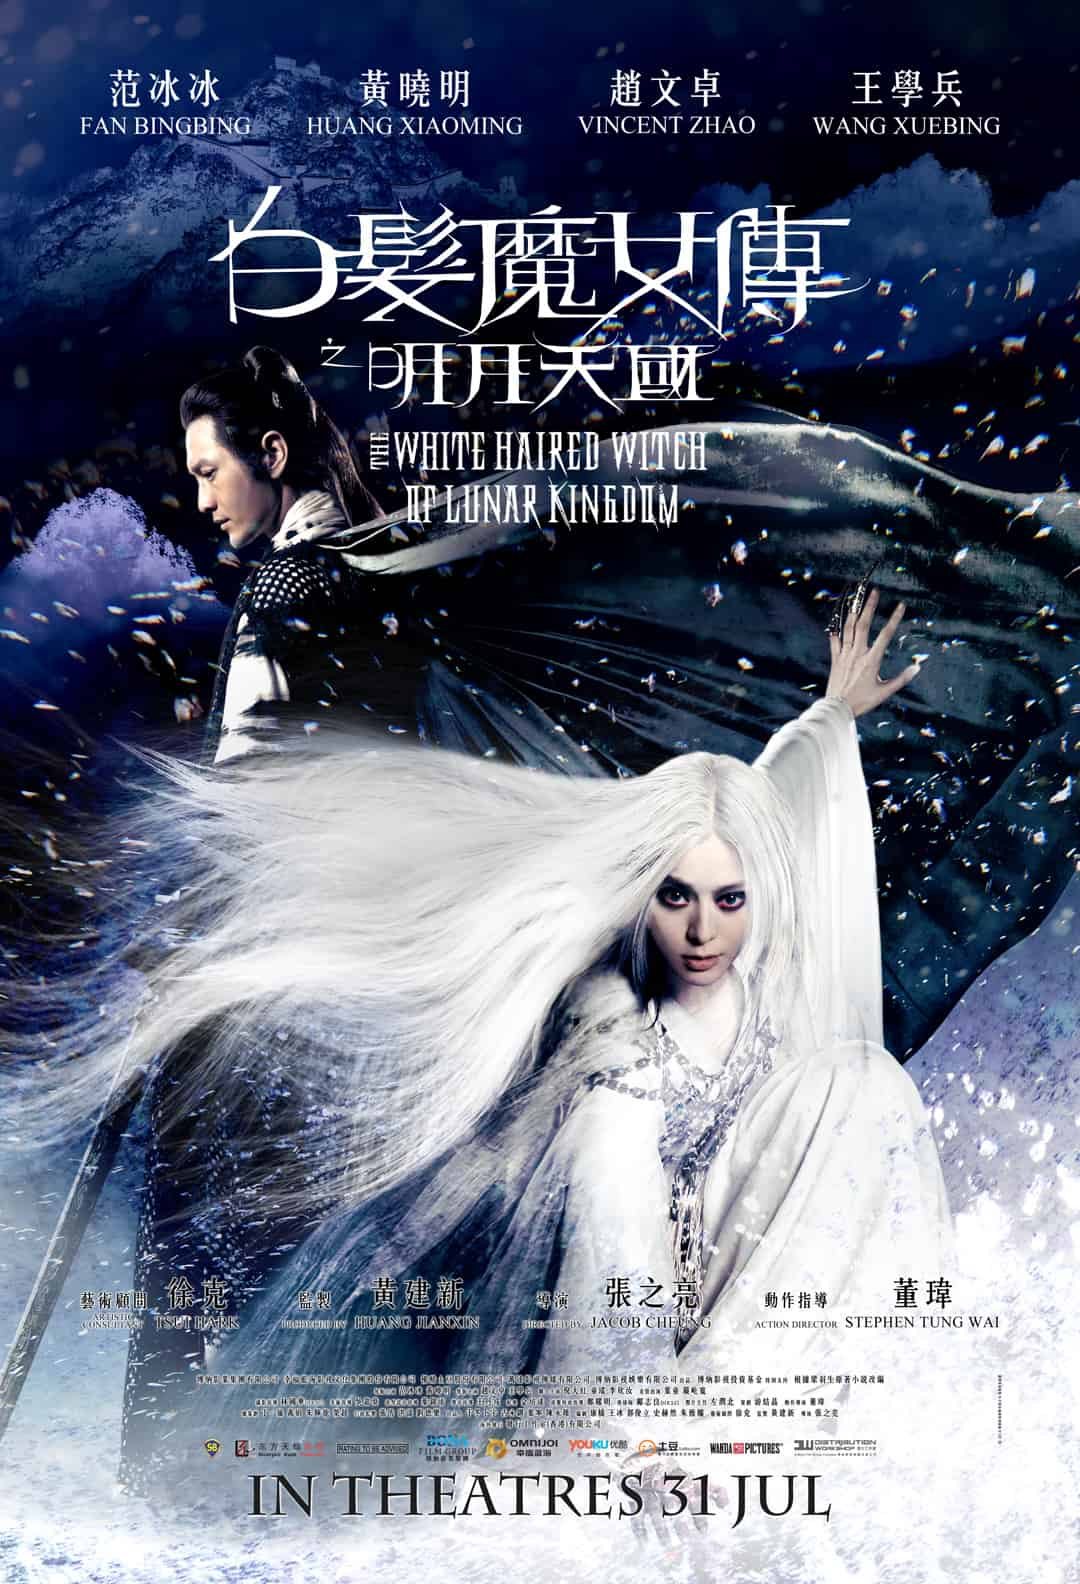 THE WHITE HAIRED WITCH OF LUNAR KINGDOM (白发魔女传之明月天国) – Review